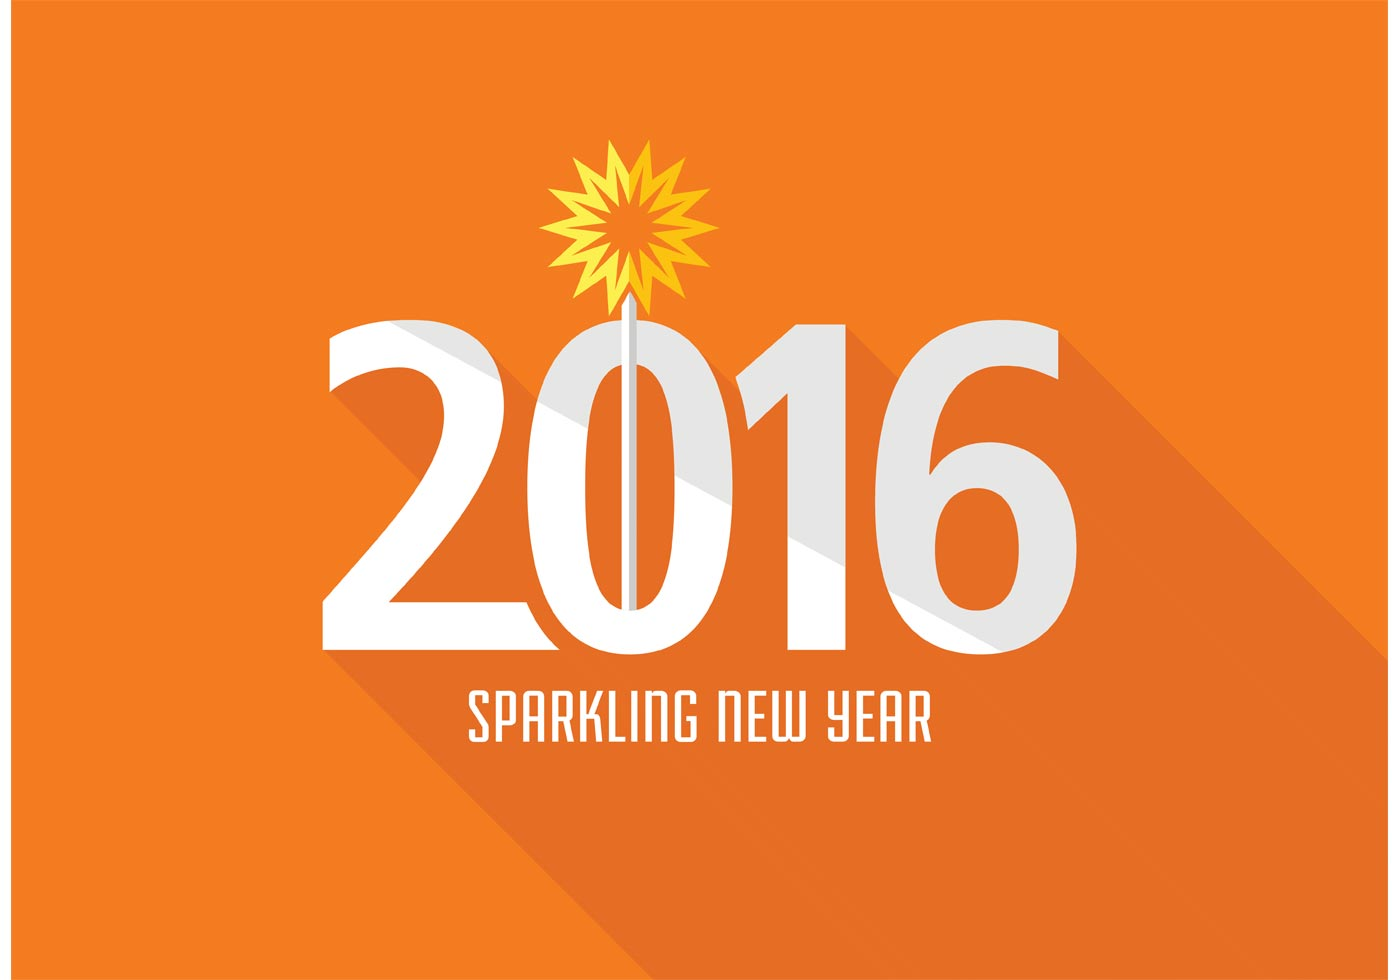 Free Creative New Year 2016 Vector Design - Download Free ...